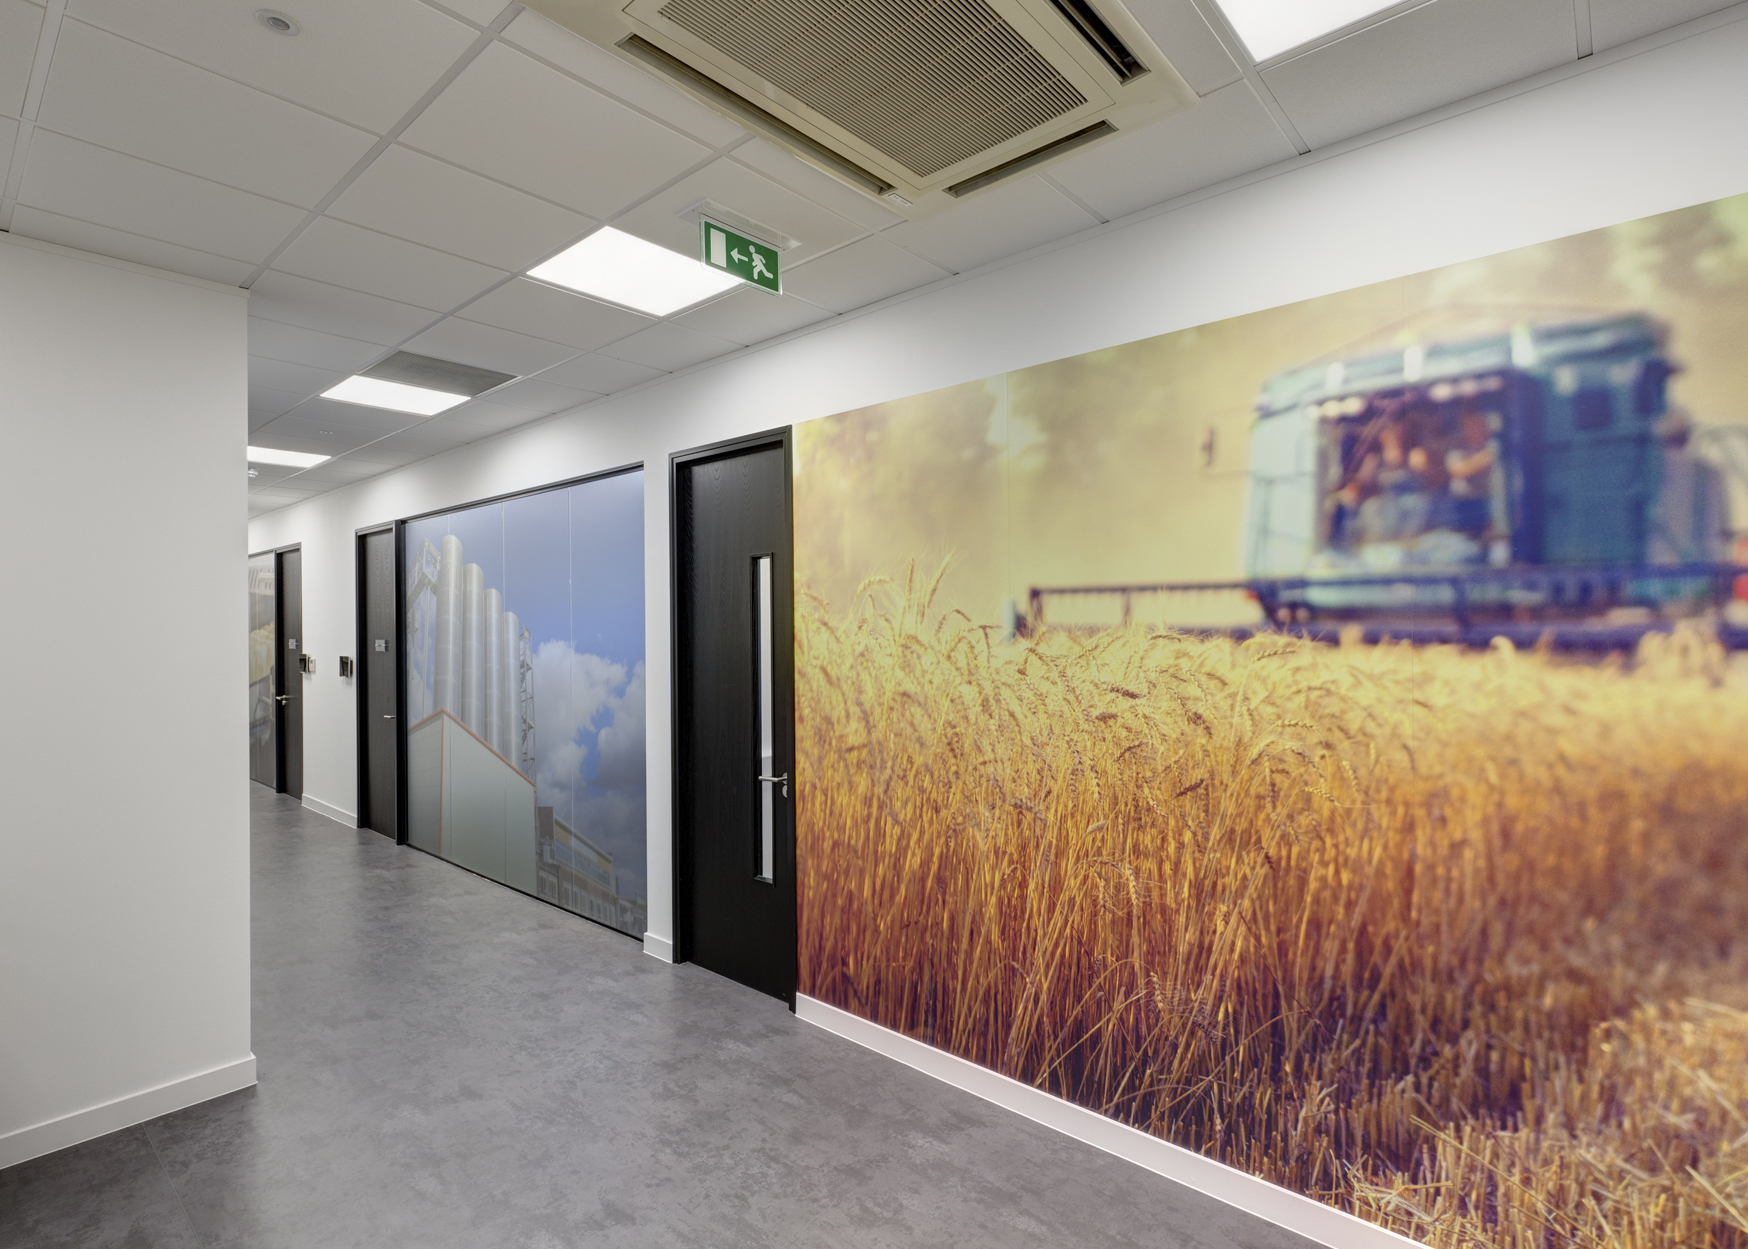 The Project Specification Included Bespoke Furniture, Feature Flooring,  Creative Wall Finishes And Branding, Refurbished Toilets And Showers Along  With A ...